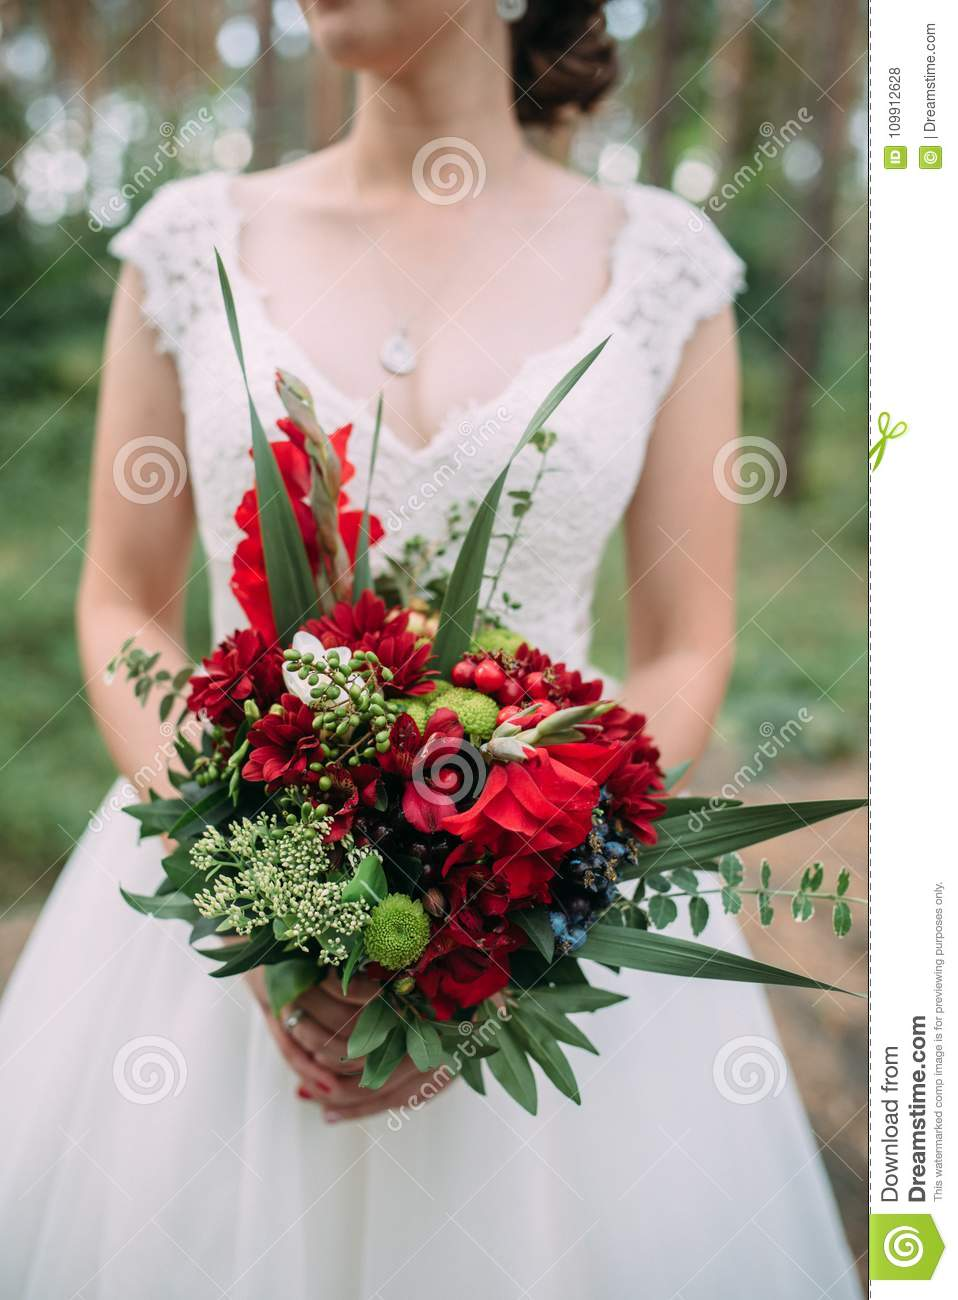 Bride Holds Wedding Bouquet With Red Flowers Stock Photo Image Of